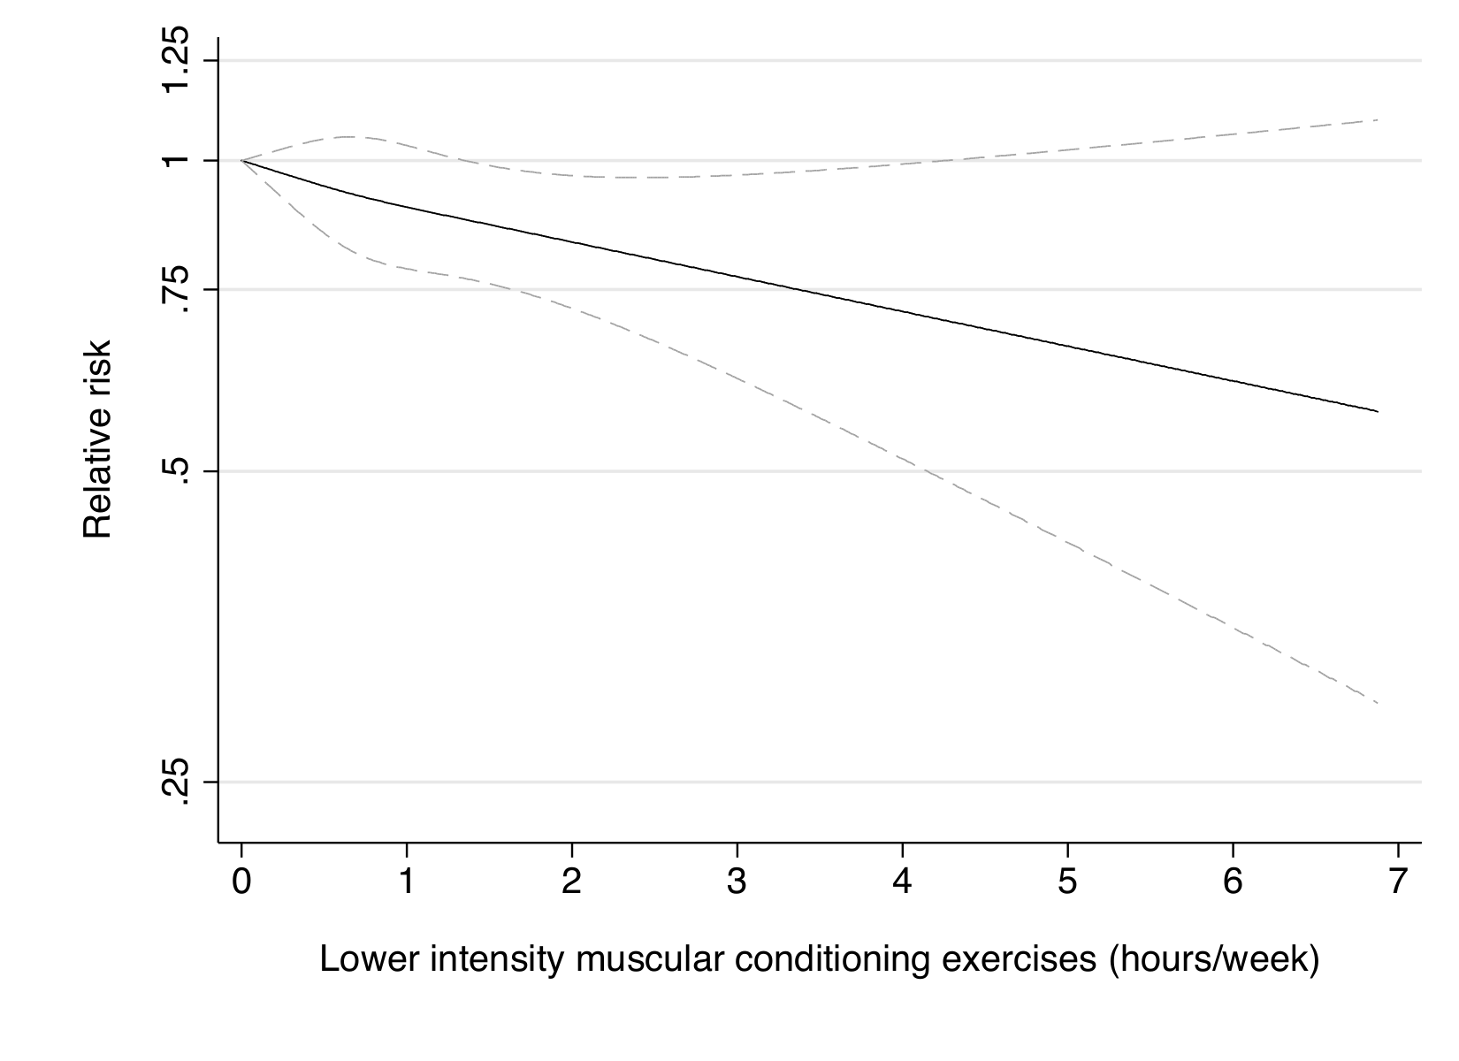 Dose-response relationship between lower intensity muscular conditioning exercises (hours/week) and risk of type 2 diabetes in women from the Nurses' Health Study.